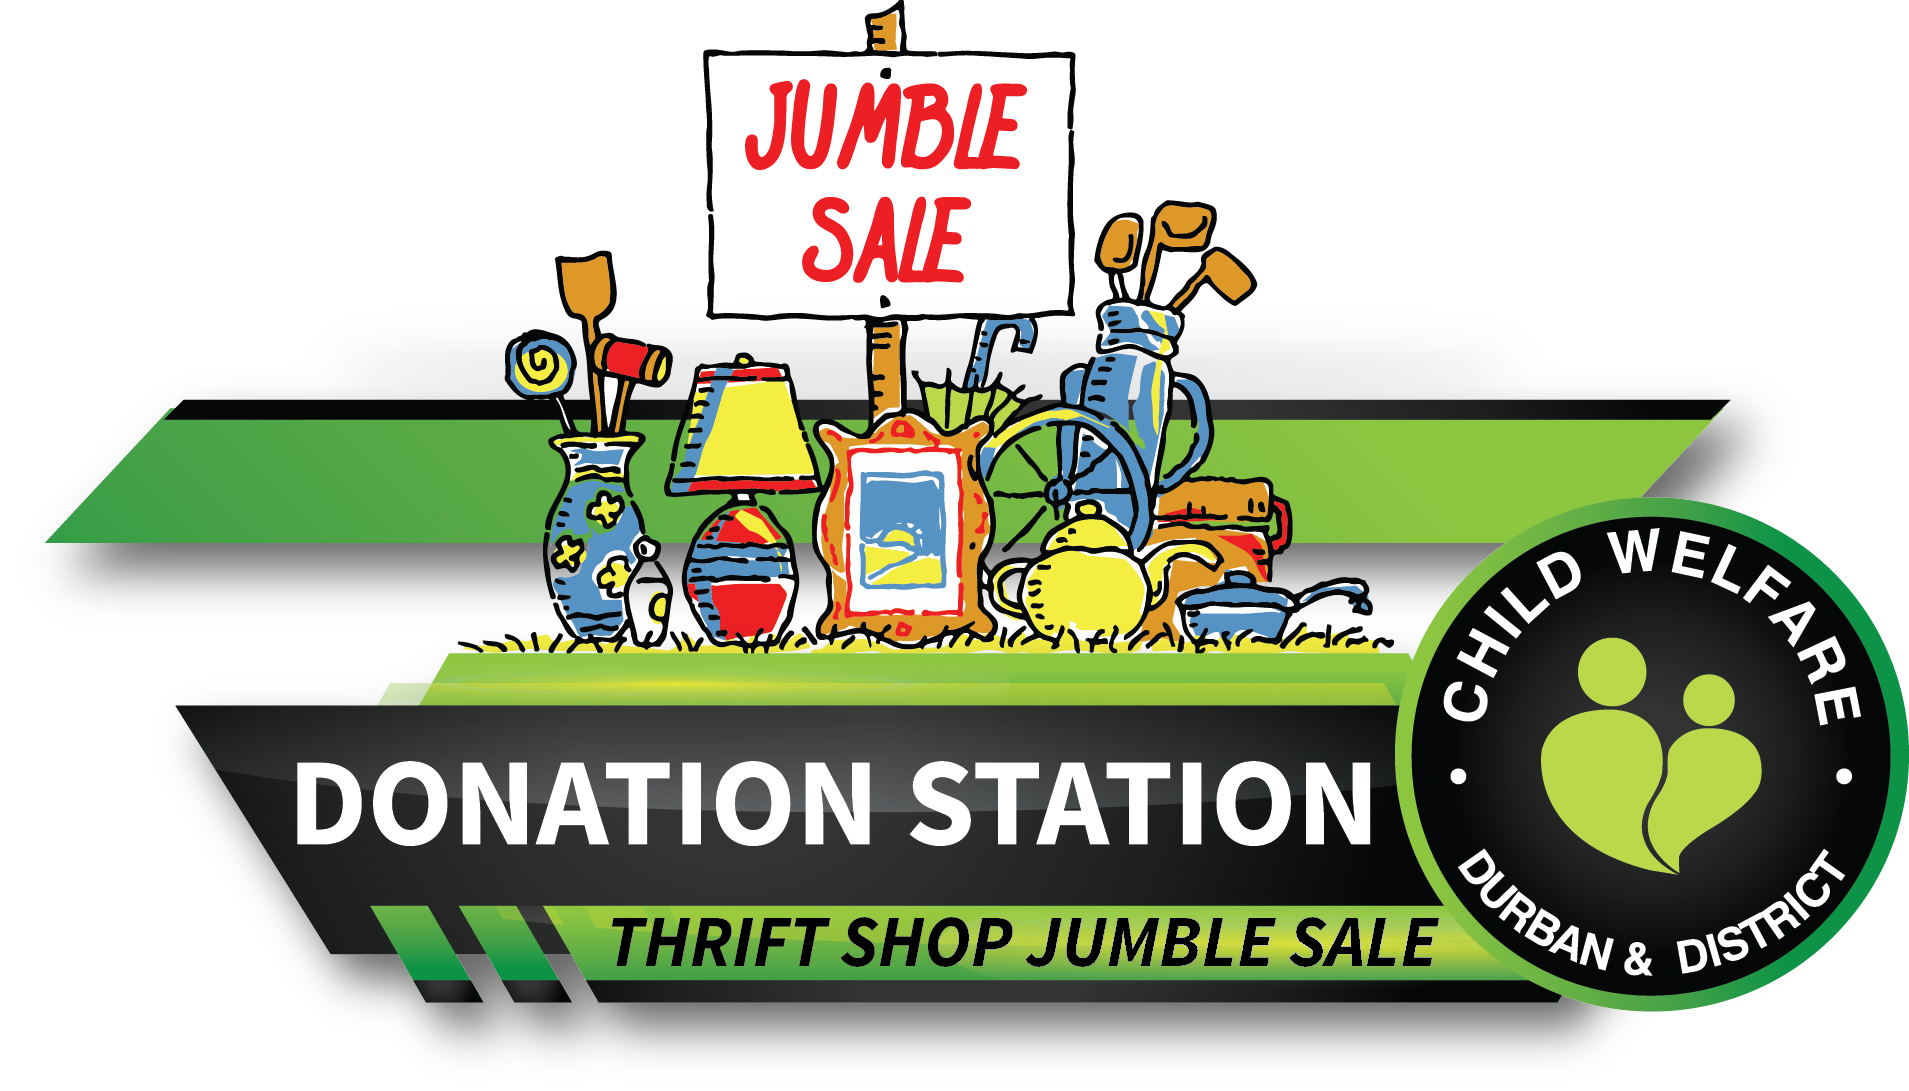 Donation Station Jumble Sale